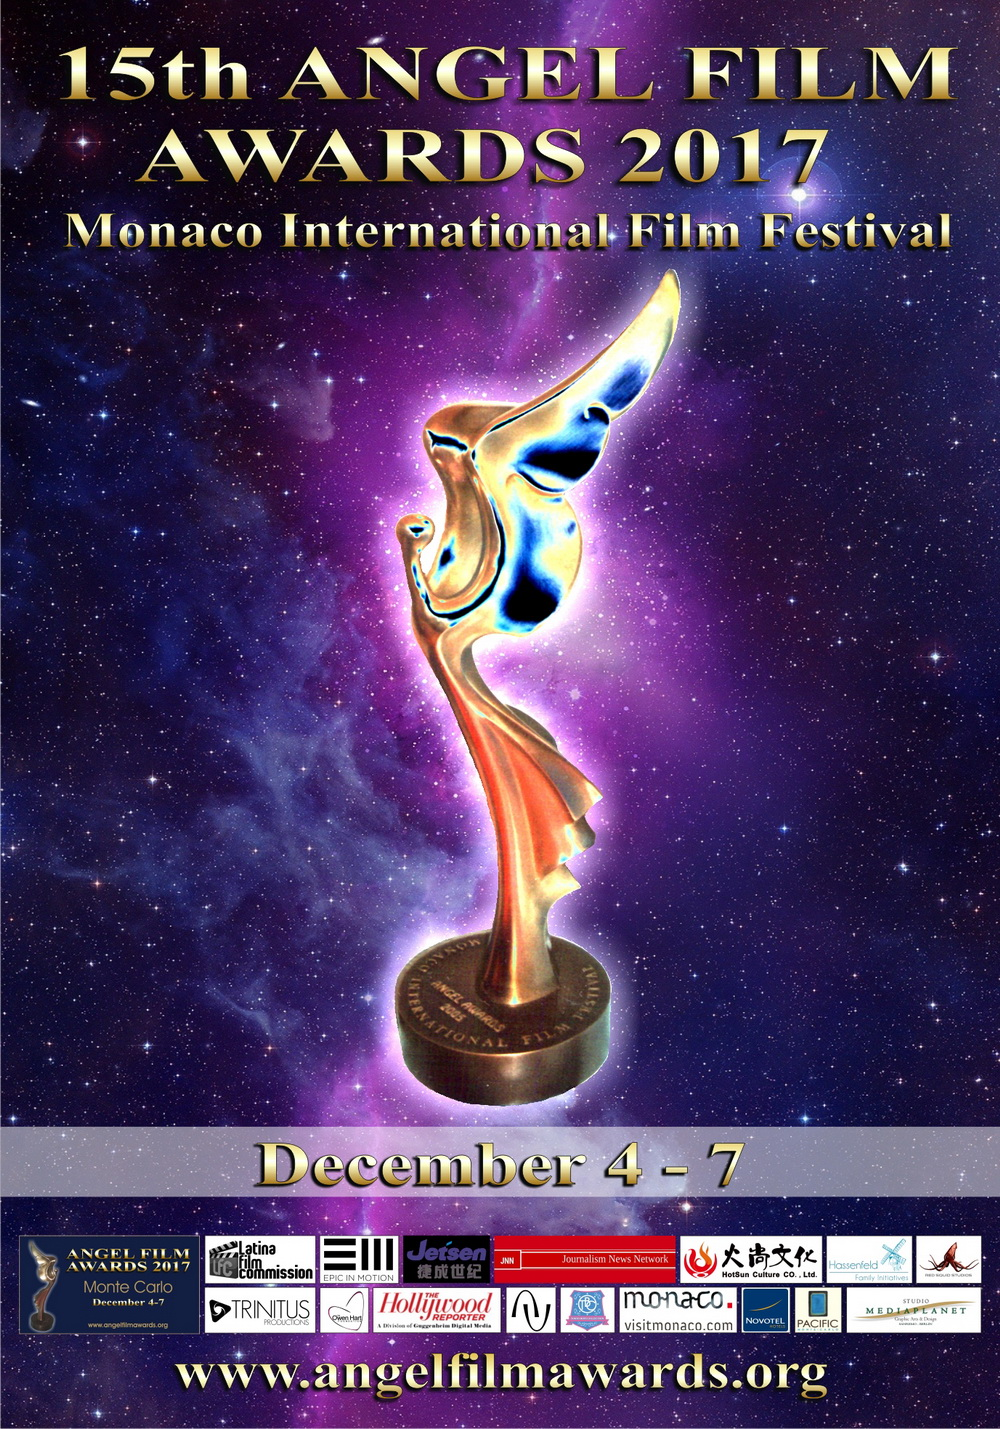 2017 Angel Film Awards Monaco